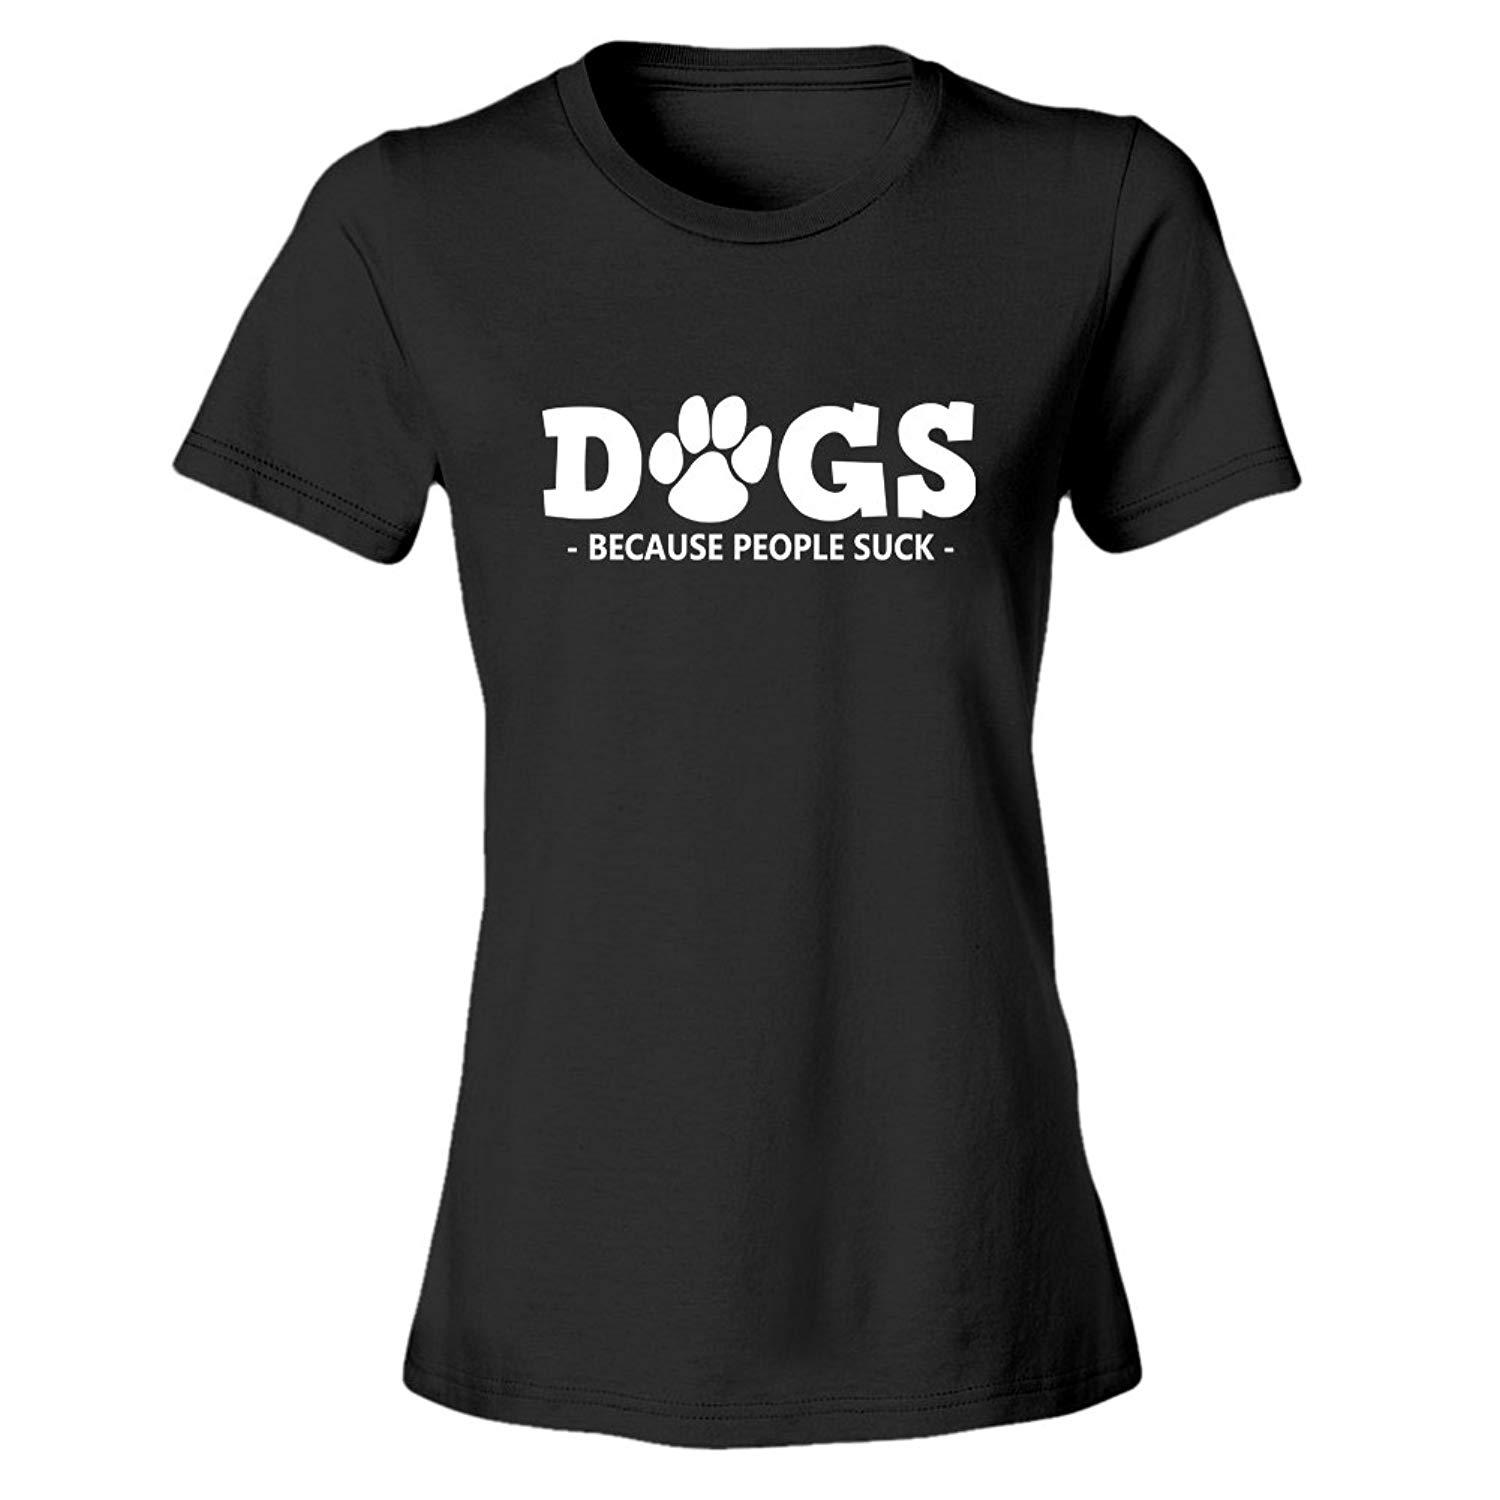 511d8986 Women'S Tee Dogs Because People Suck Gift Idea Womens Funny T Shirt The T  Shirt T Shirts Designer From Carmarstore, $23.95| DHgate.Com